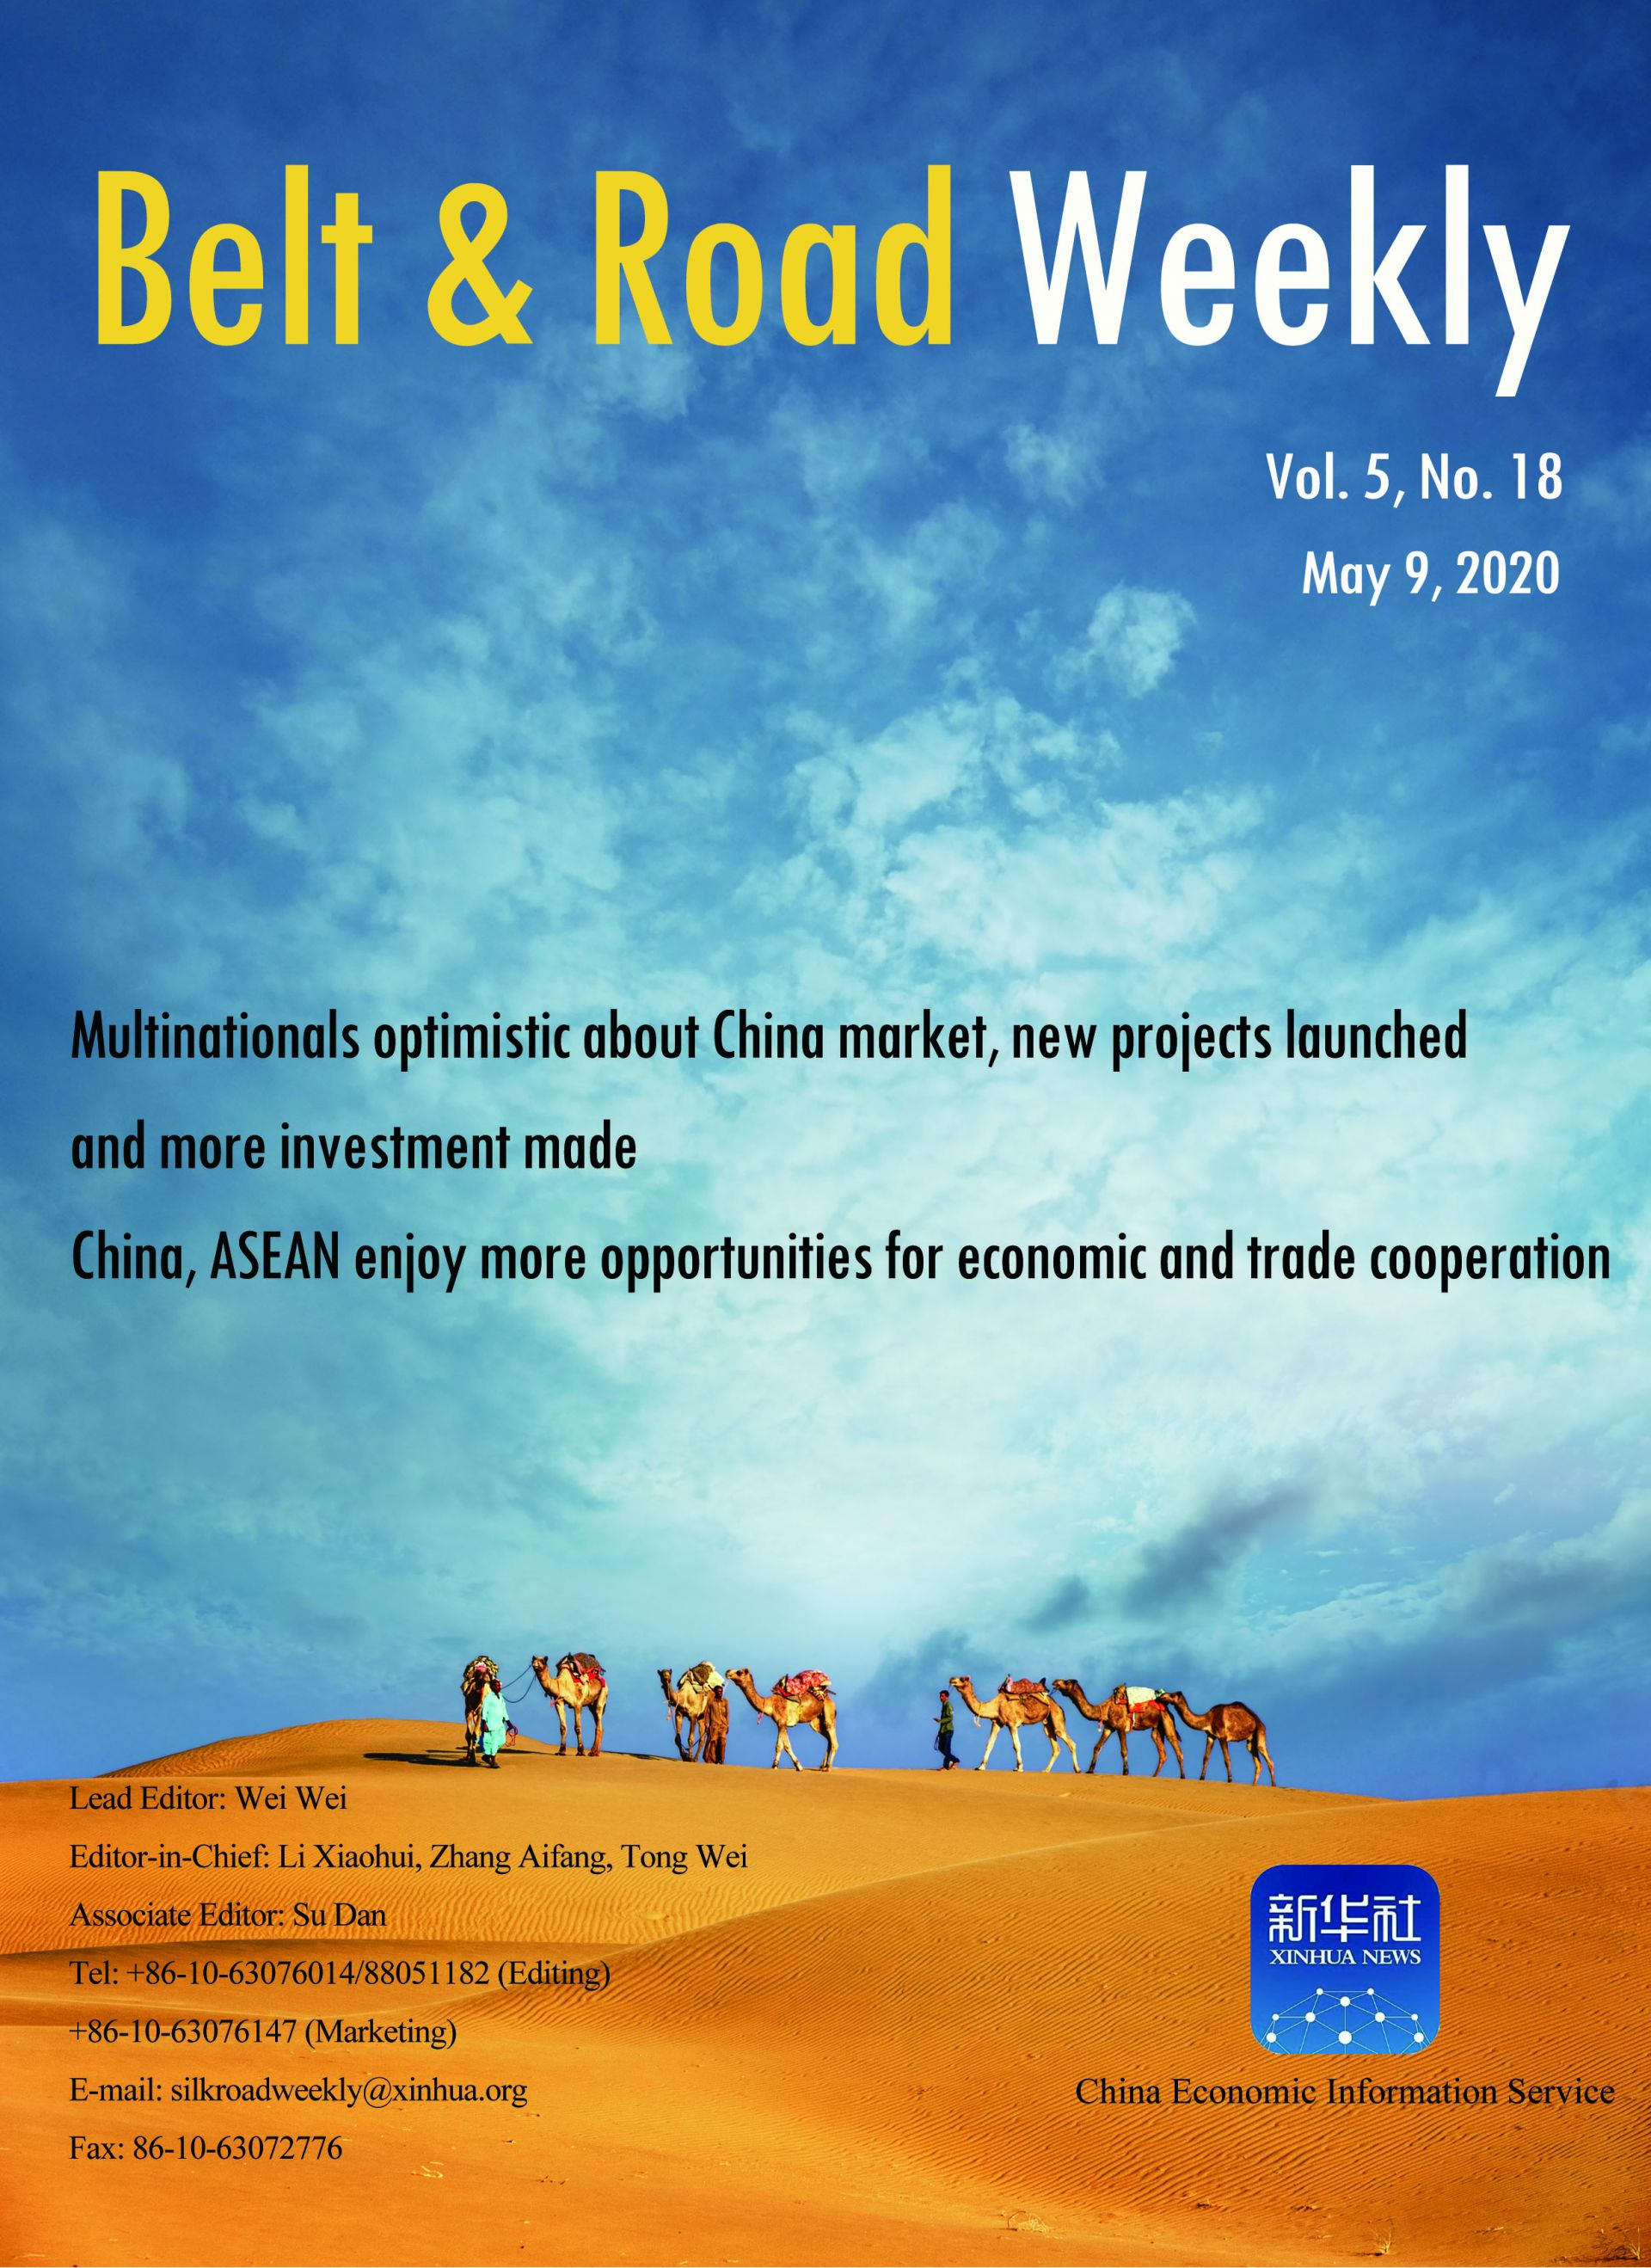 Belt & Road Weekly Vol. 5 No. 18